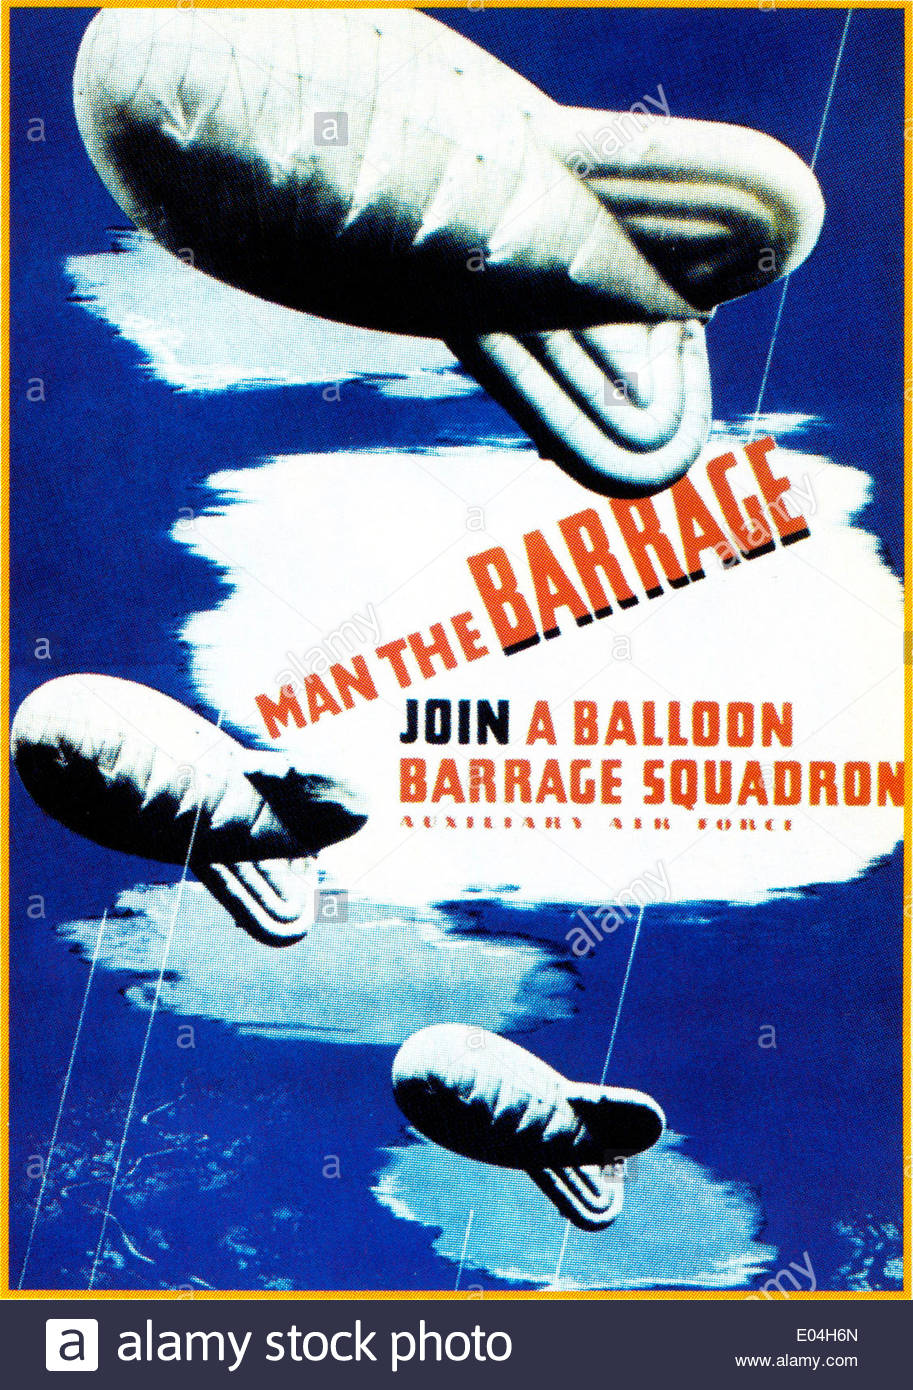 'Join a Balloon Barrage Squadron' British recruitment wartime poster - Stock Image